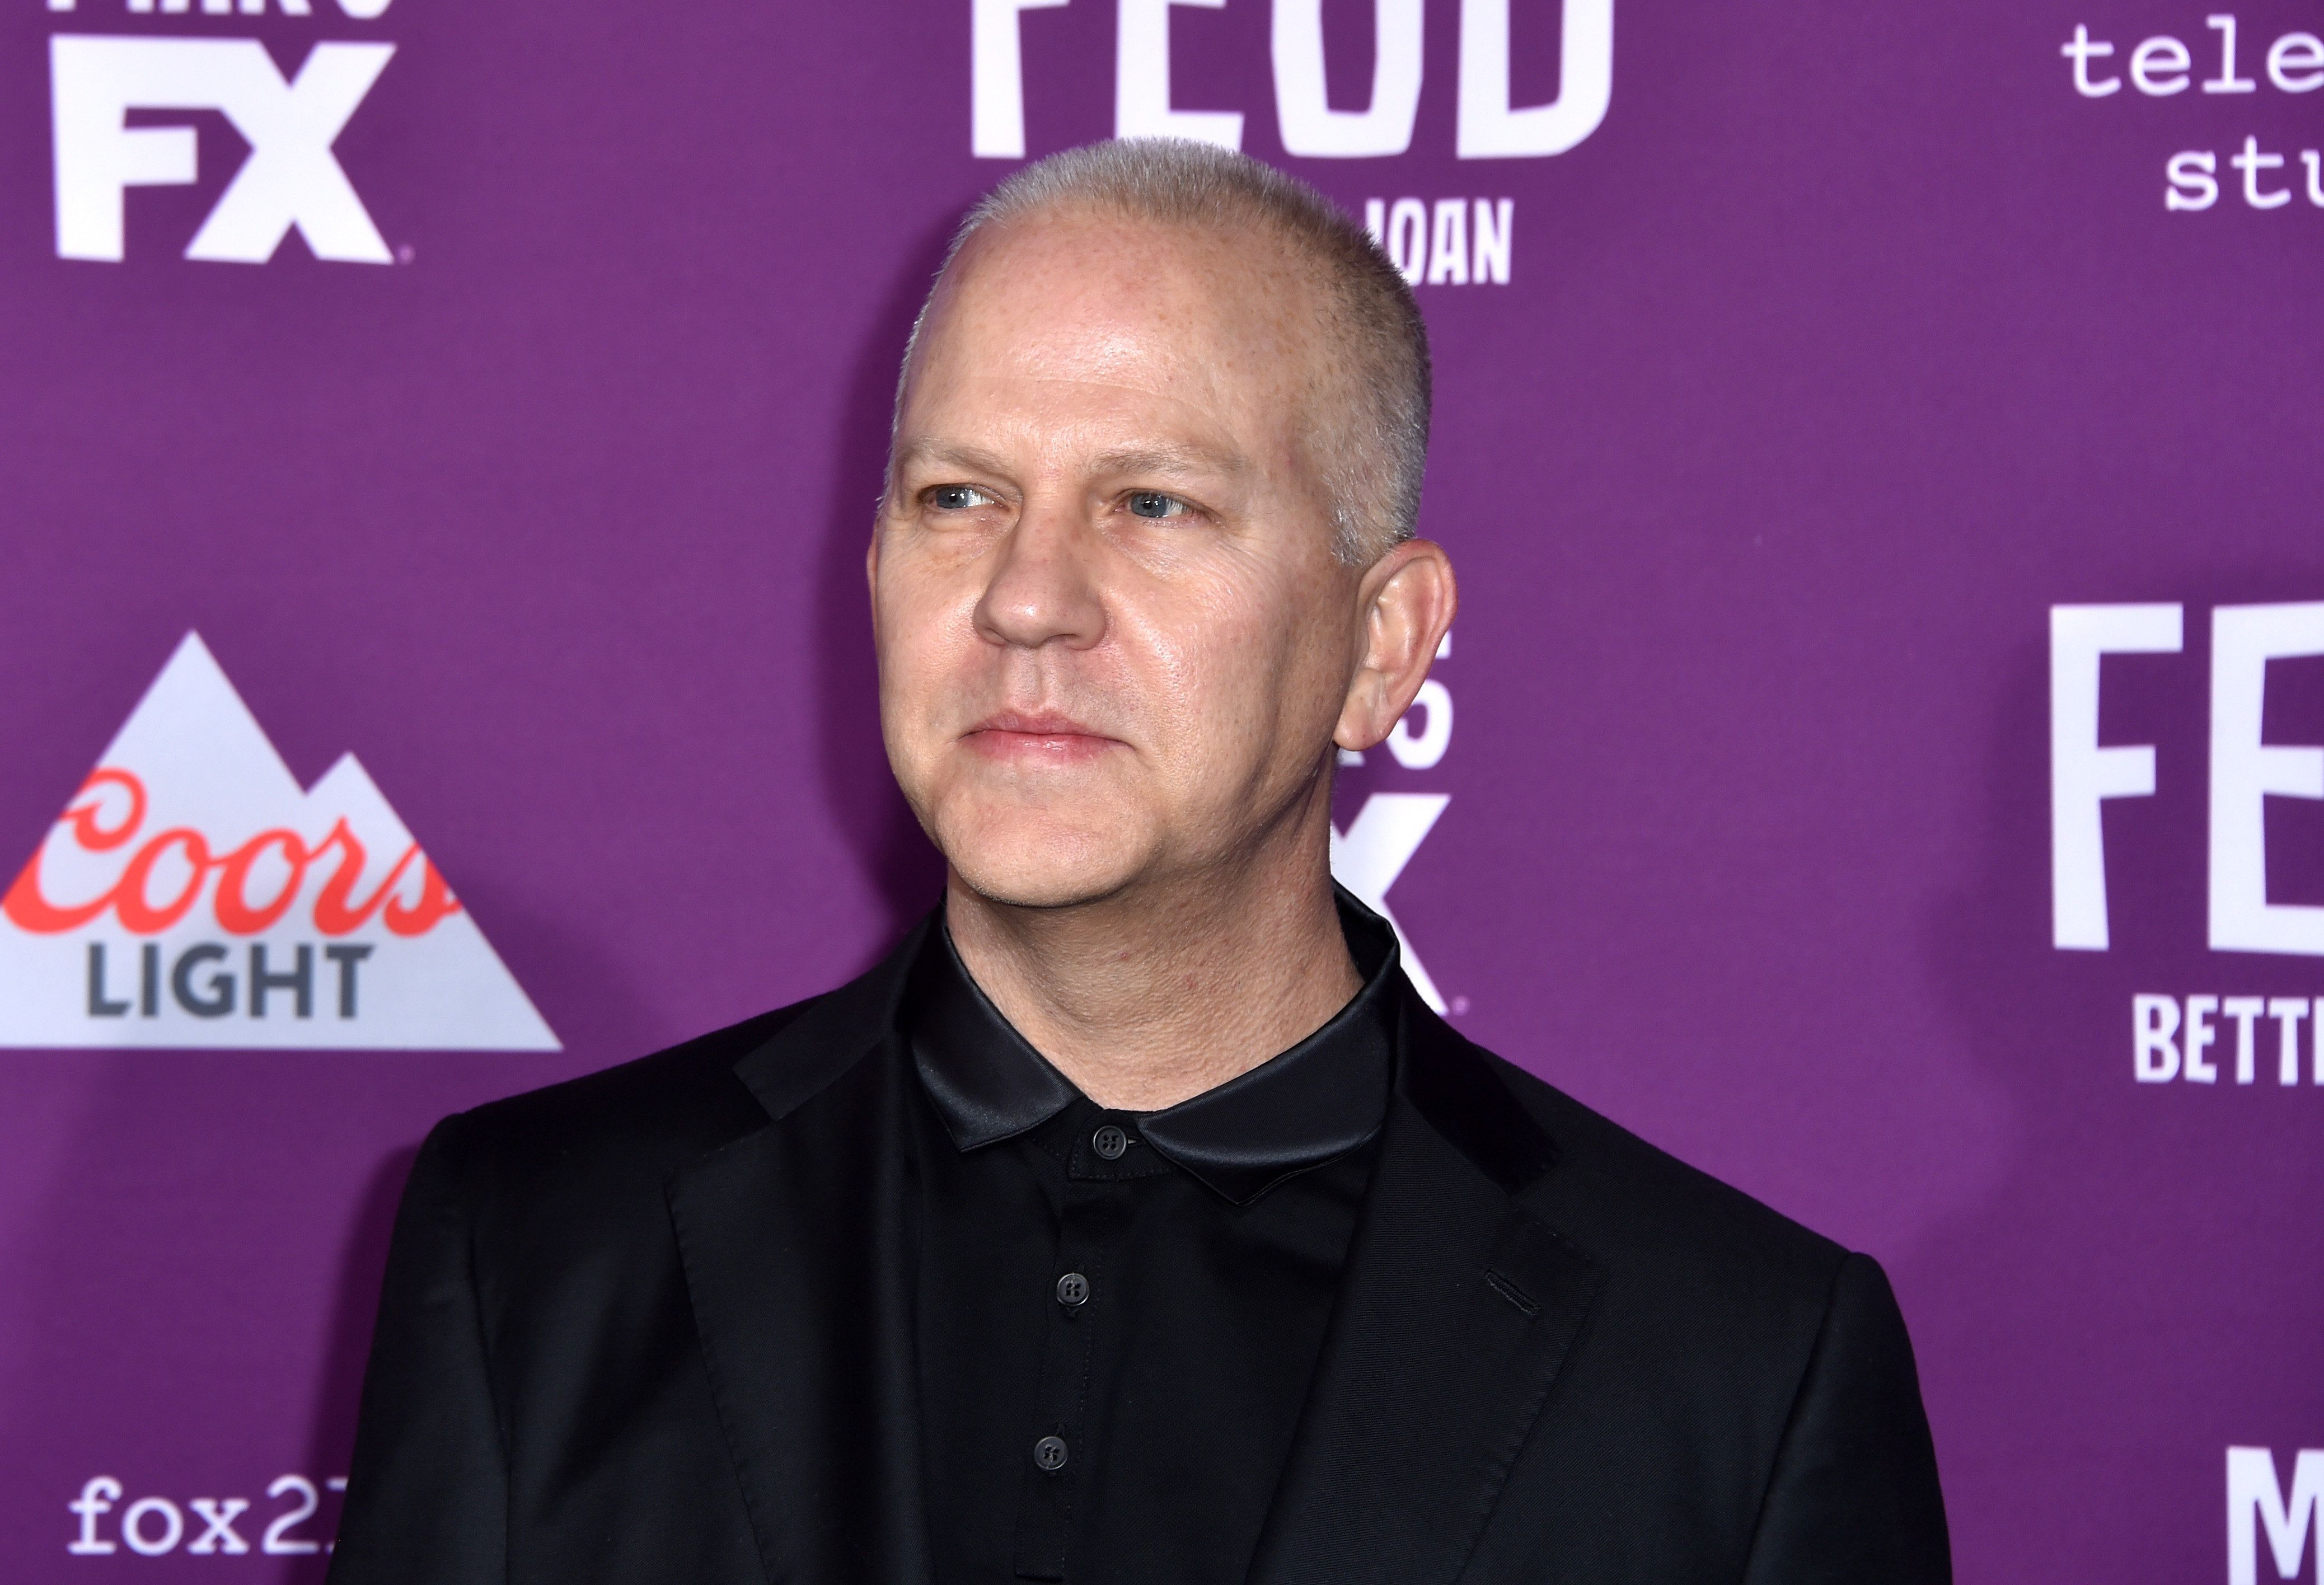 HOLLYWOOD, CA - MARCH 01: Writer/director/producer Ryan Murphy attends FX Network's 'Feud: Bette and Joan' premiere at Grauman's Chinese Theatre on March 1, 2017 in Hollywood, California.  (Photo by Frazer Harrison/Getty Images)